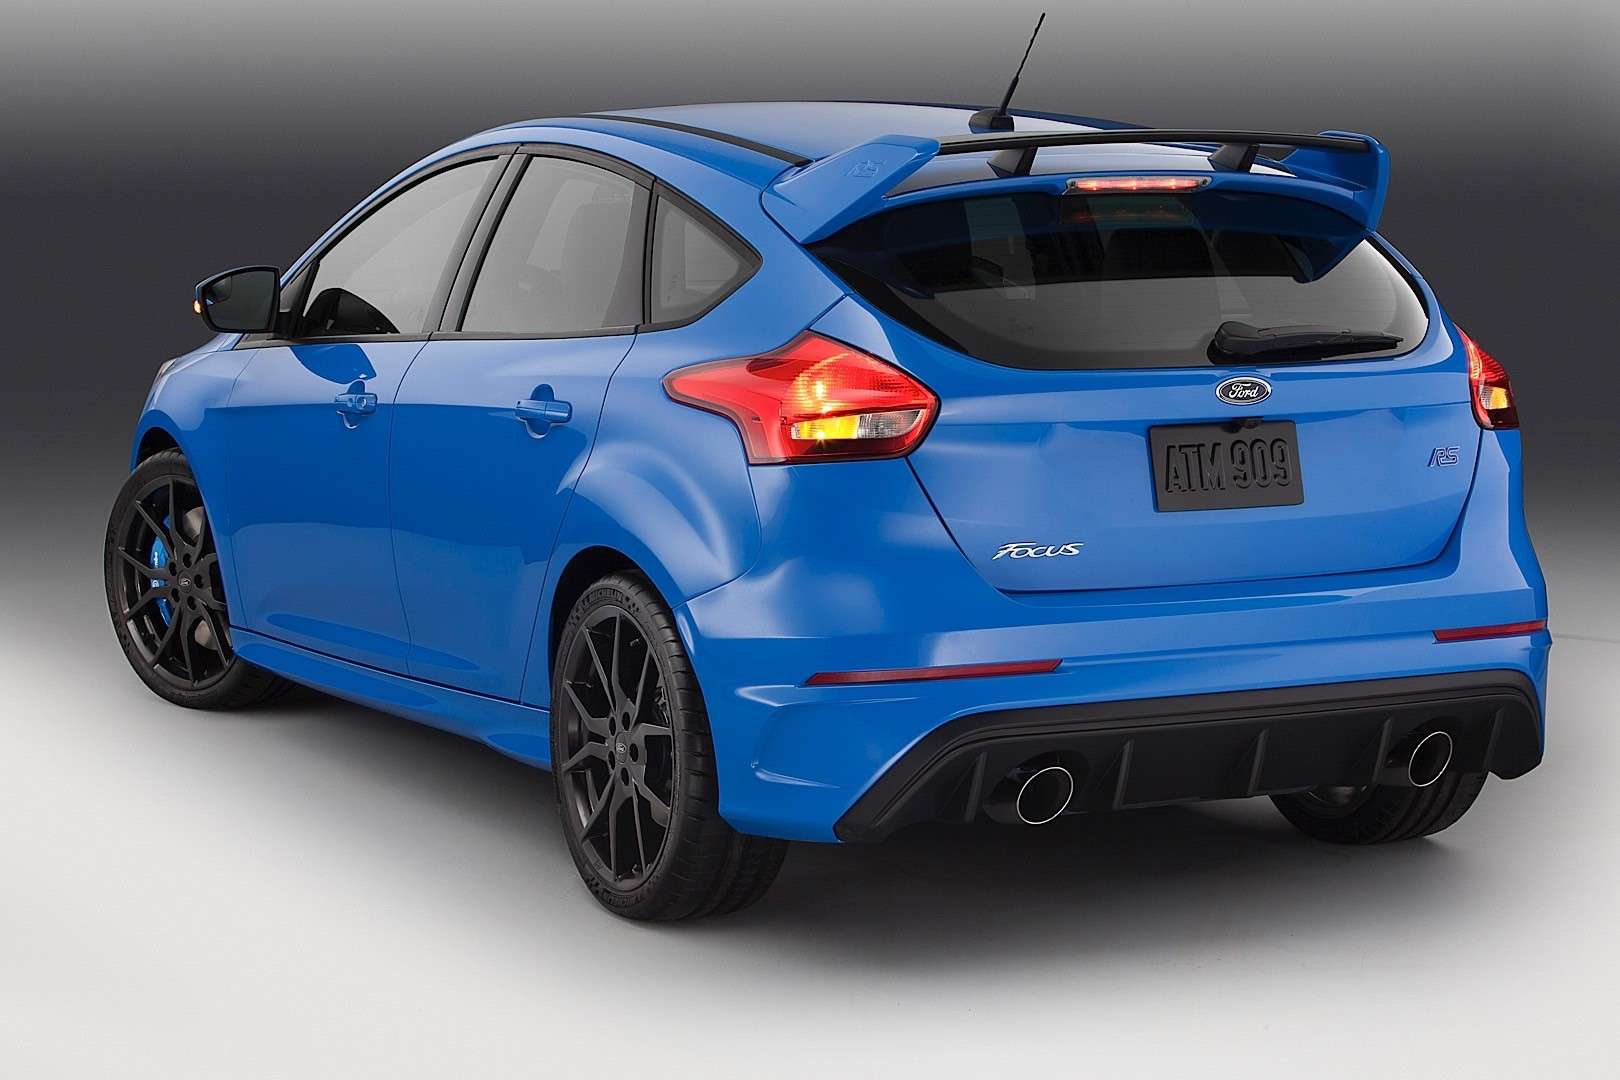 2016 Ford Focus RS Will Land in The US at the 2015 NYIAS, Has 320+ HP